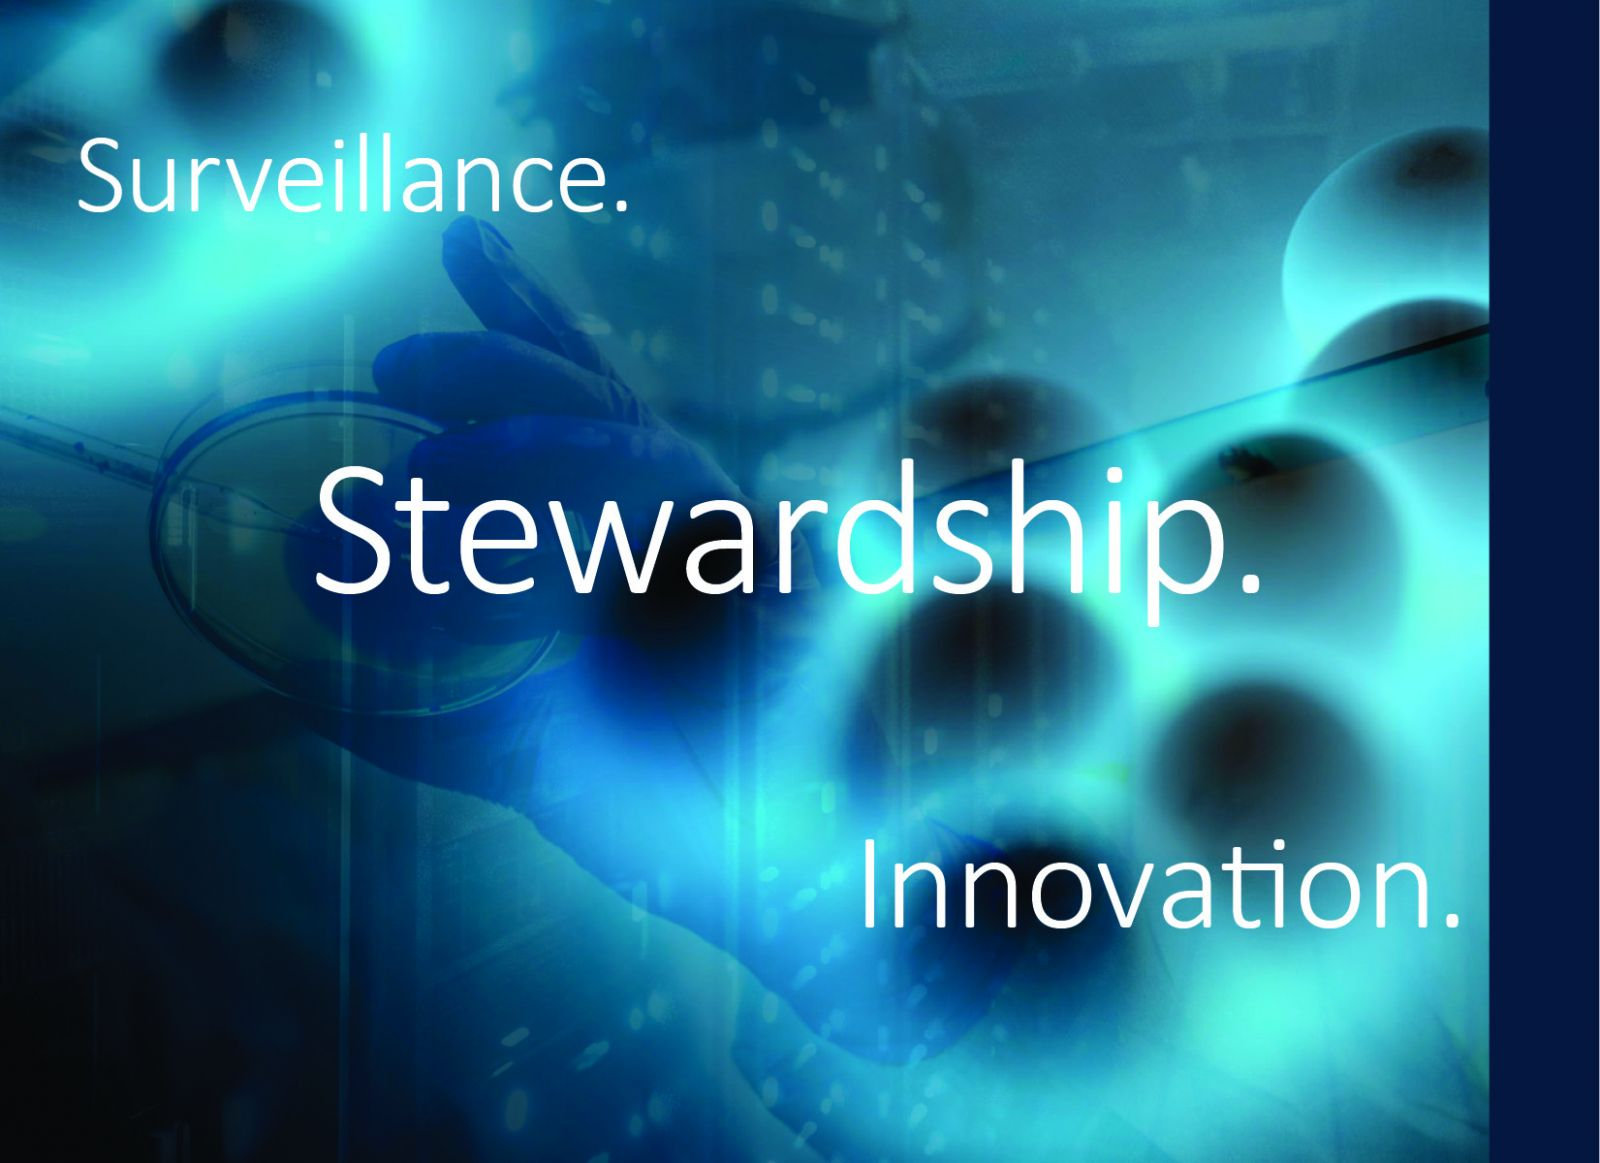 Image illustrating antimicrobial surveillance, stewardship and innovation